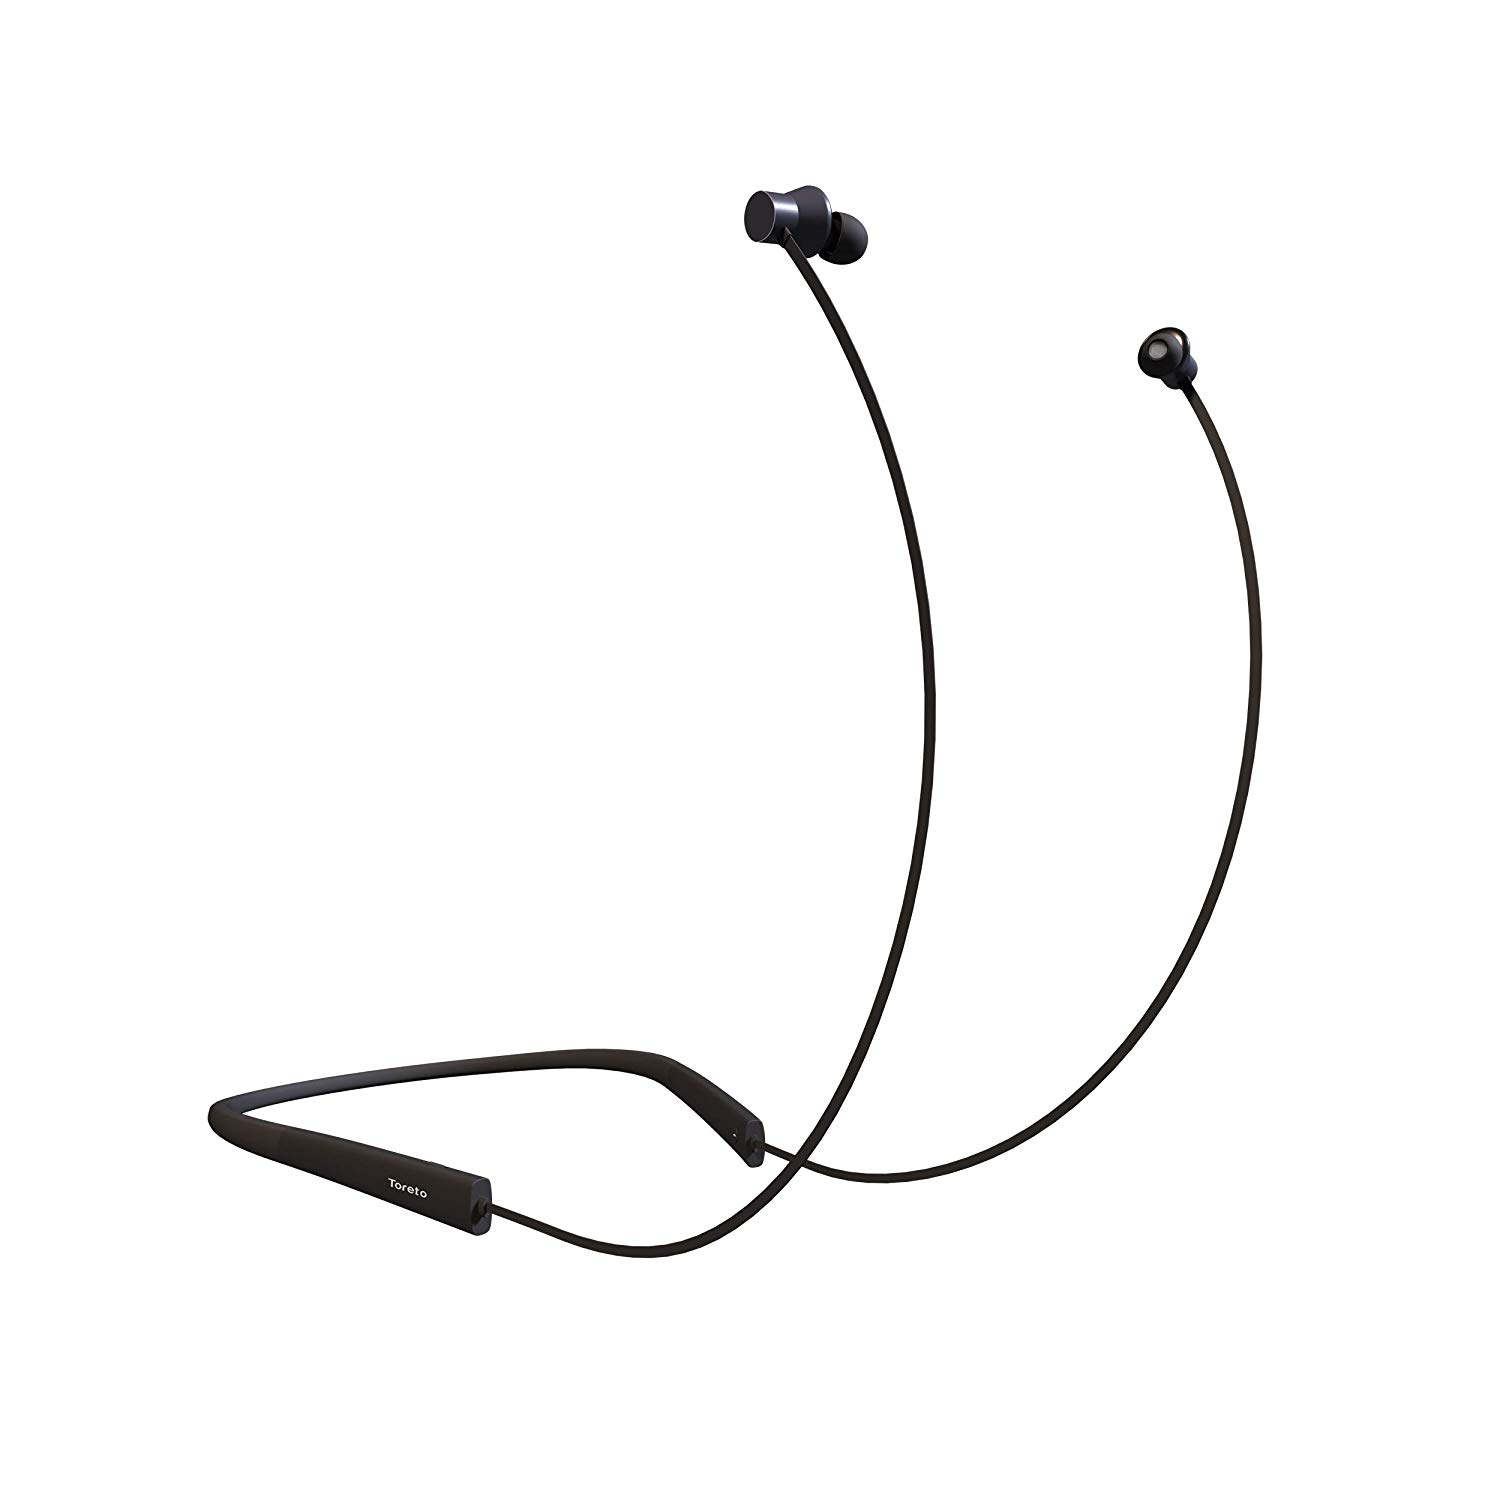 Toreto Blare Pro Wireless Magnetic Neckband, Bluetooth in Ear with Mic for Sports, Gym, Travellers and Music Lovers(TOR-805, Black)